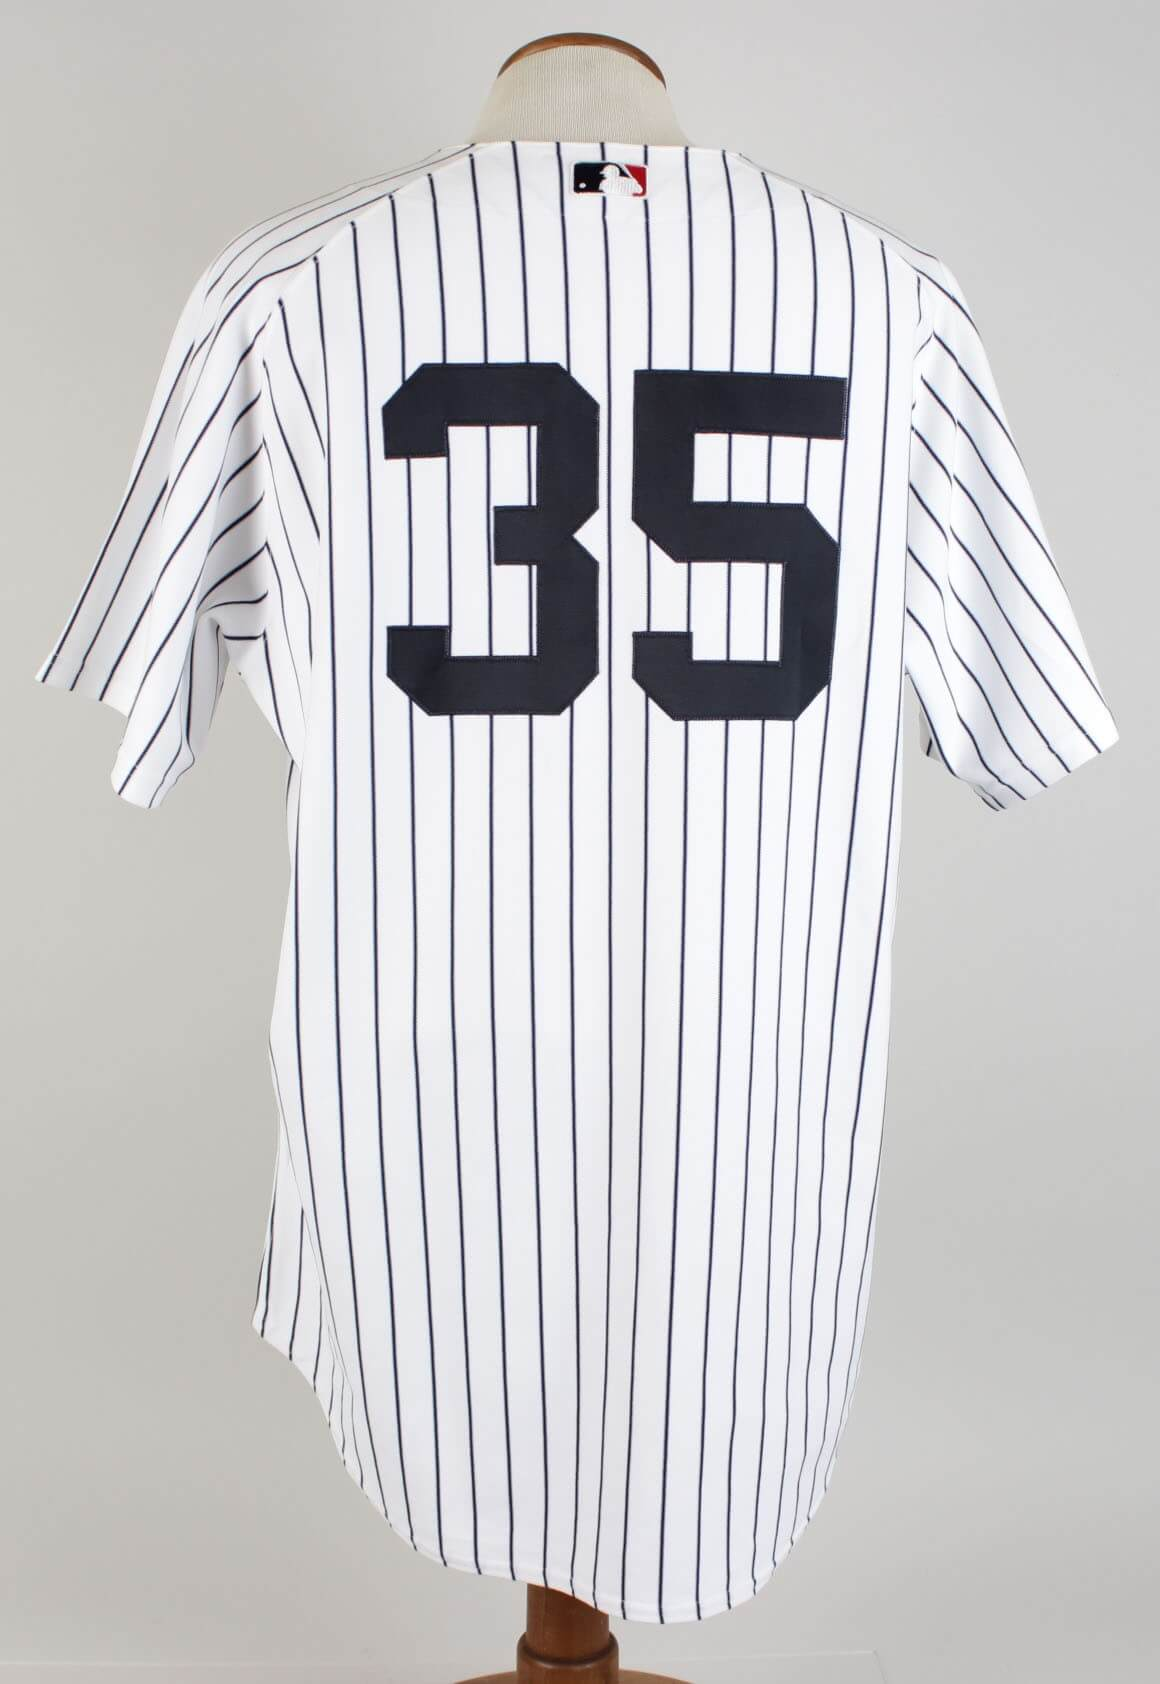 2005 NY Yankees - Mike Mussina Game-Worn Home Jersey - Team Steiner LOA